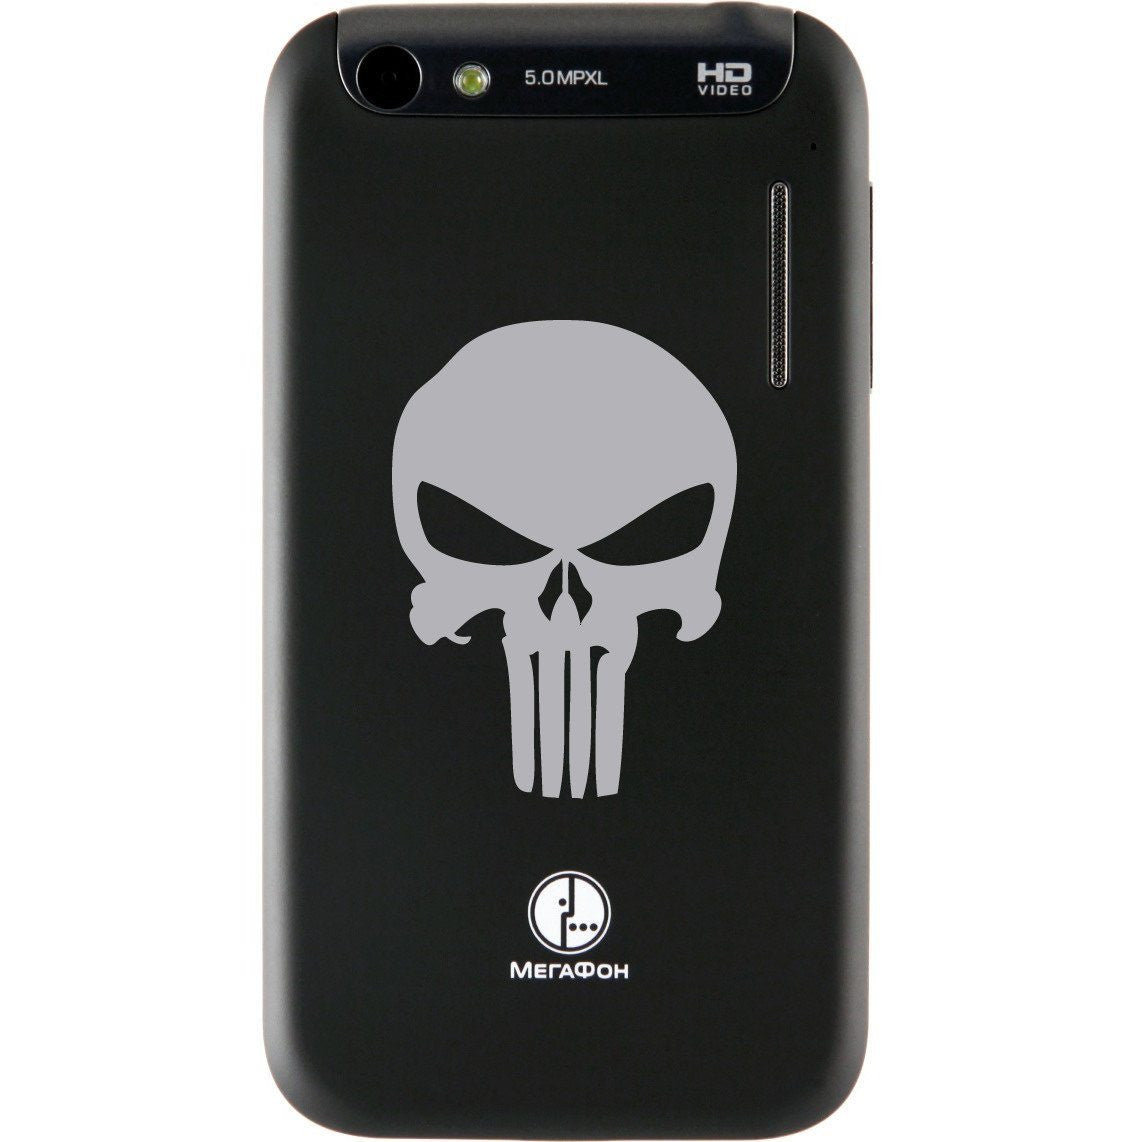 Punisher Skull Superhero Logo Bumper/Phone/Laptop Sticker (AS11001) - Apex Stickers